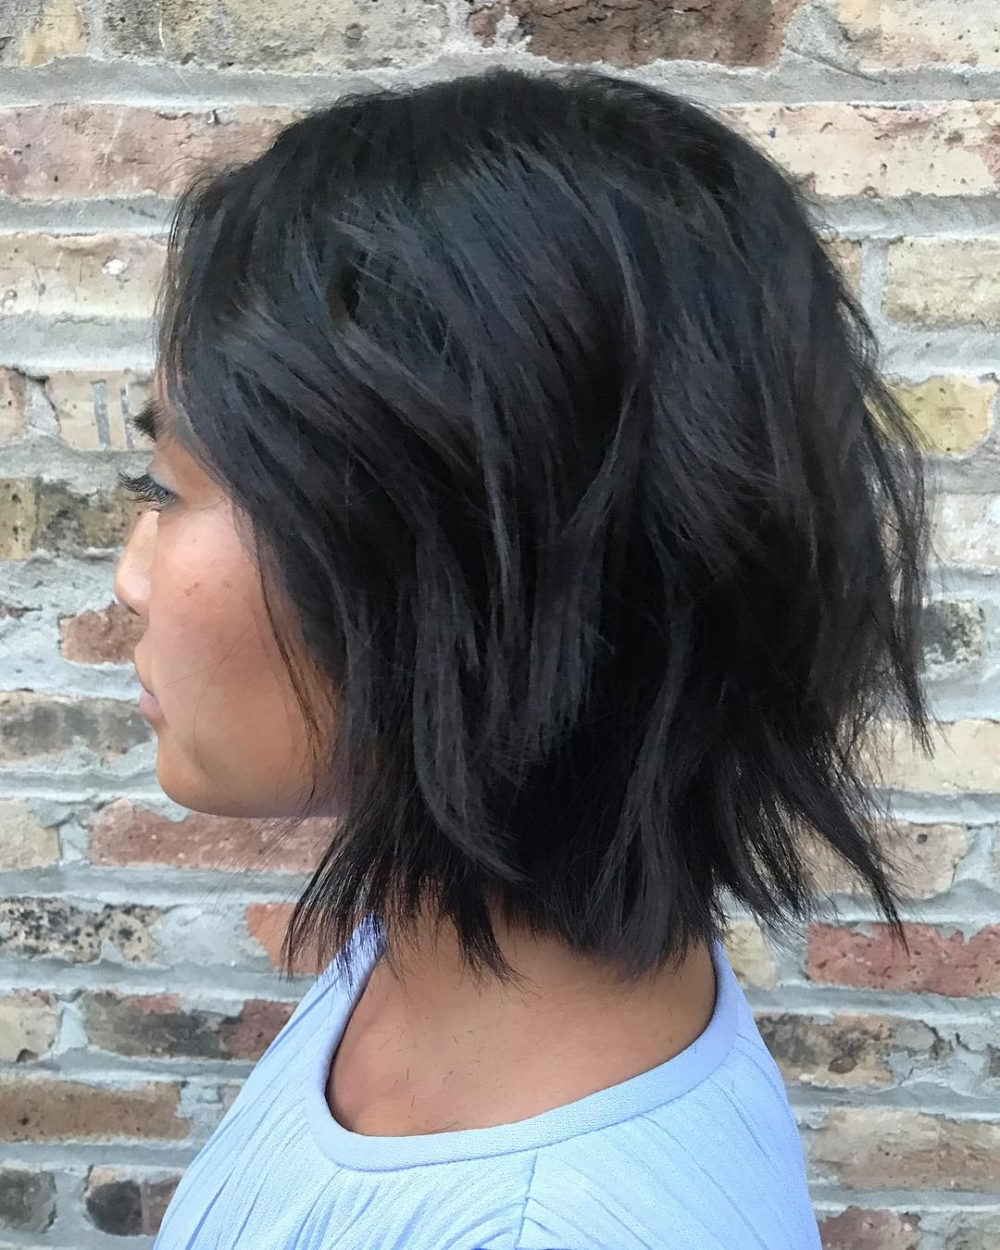 45 Chic Choppy Bob Hairstyles For 2018 With Regard To Black Inverted Bob Hairstyles With Choppy Layers (View 7 of 20)